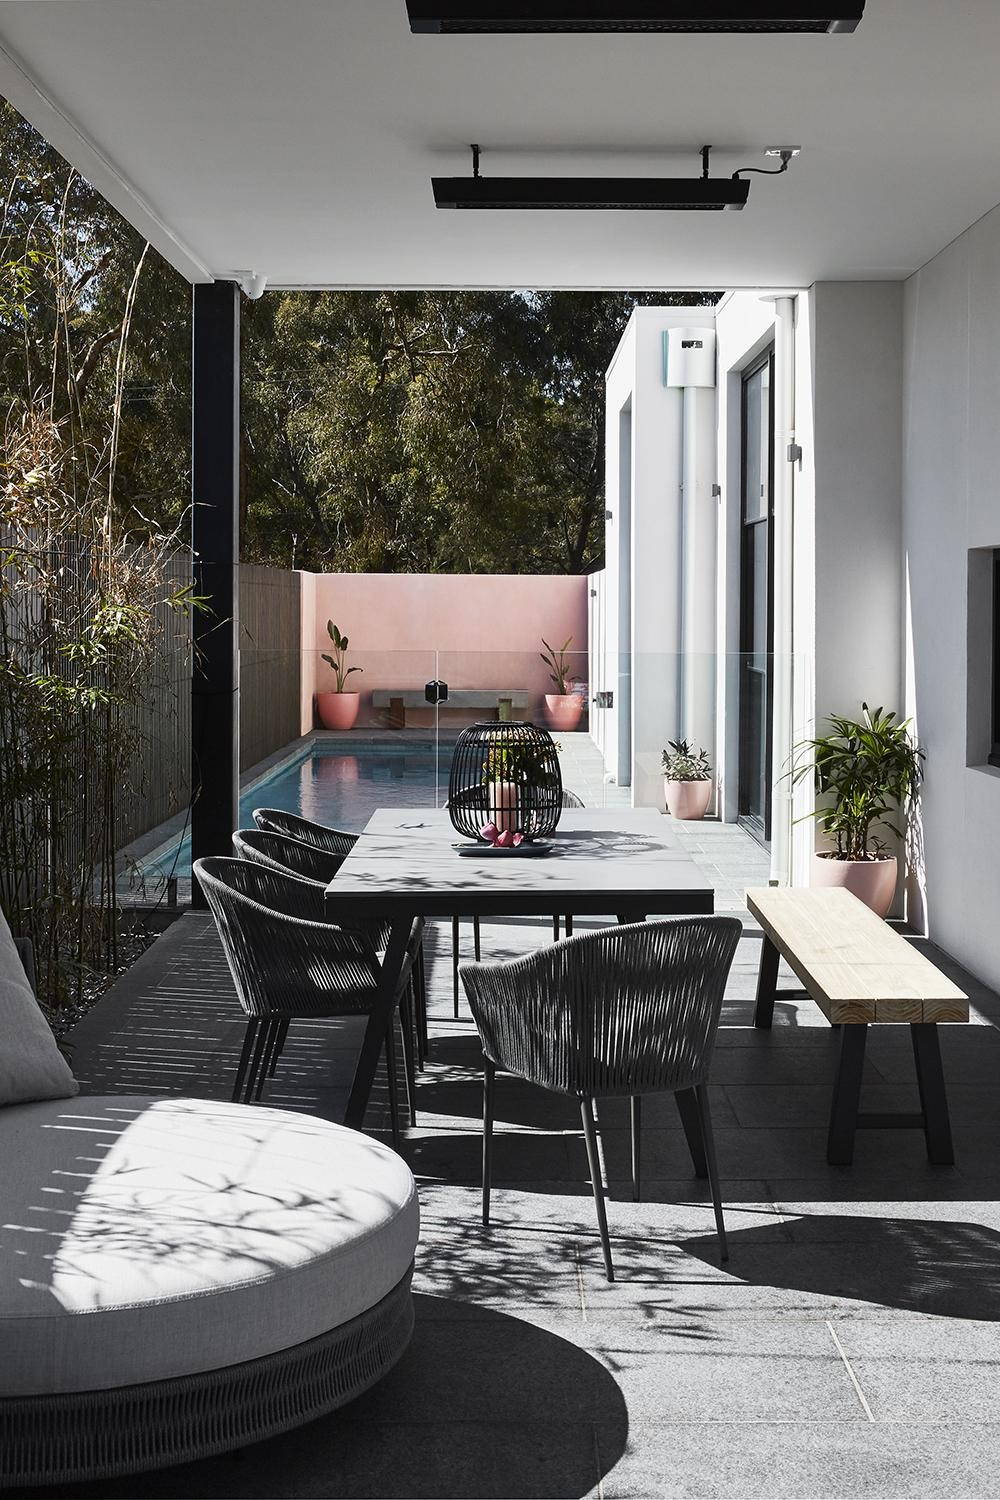 Gallery Of Jells Road By Canny Group Local Australian Residential Design & Property Development Melbourne, Vic Image 10